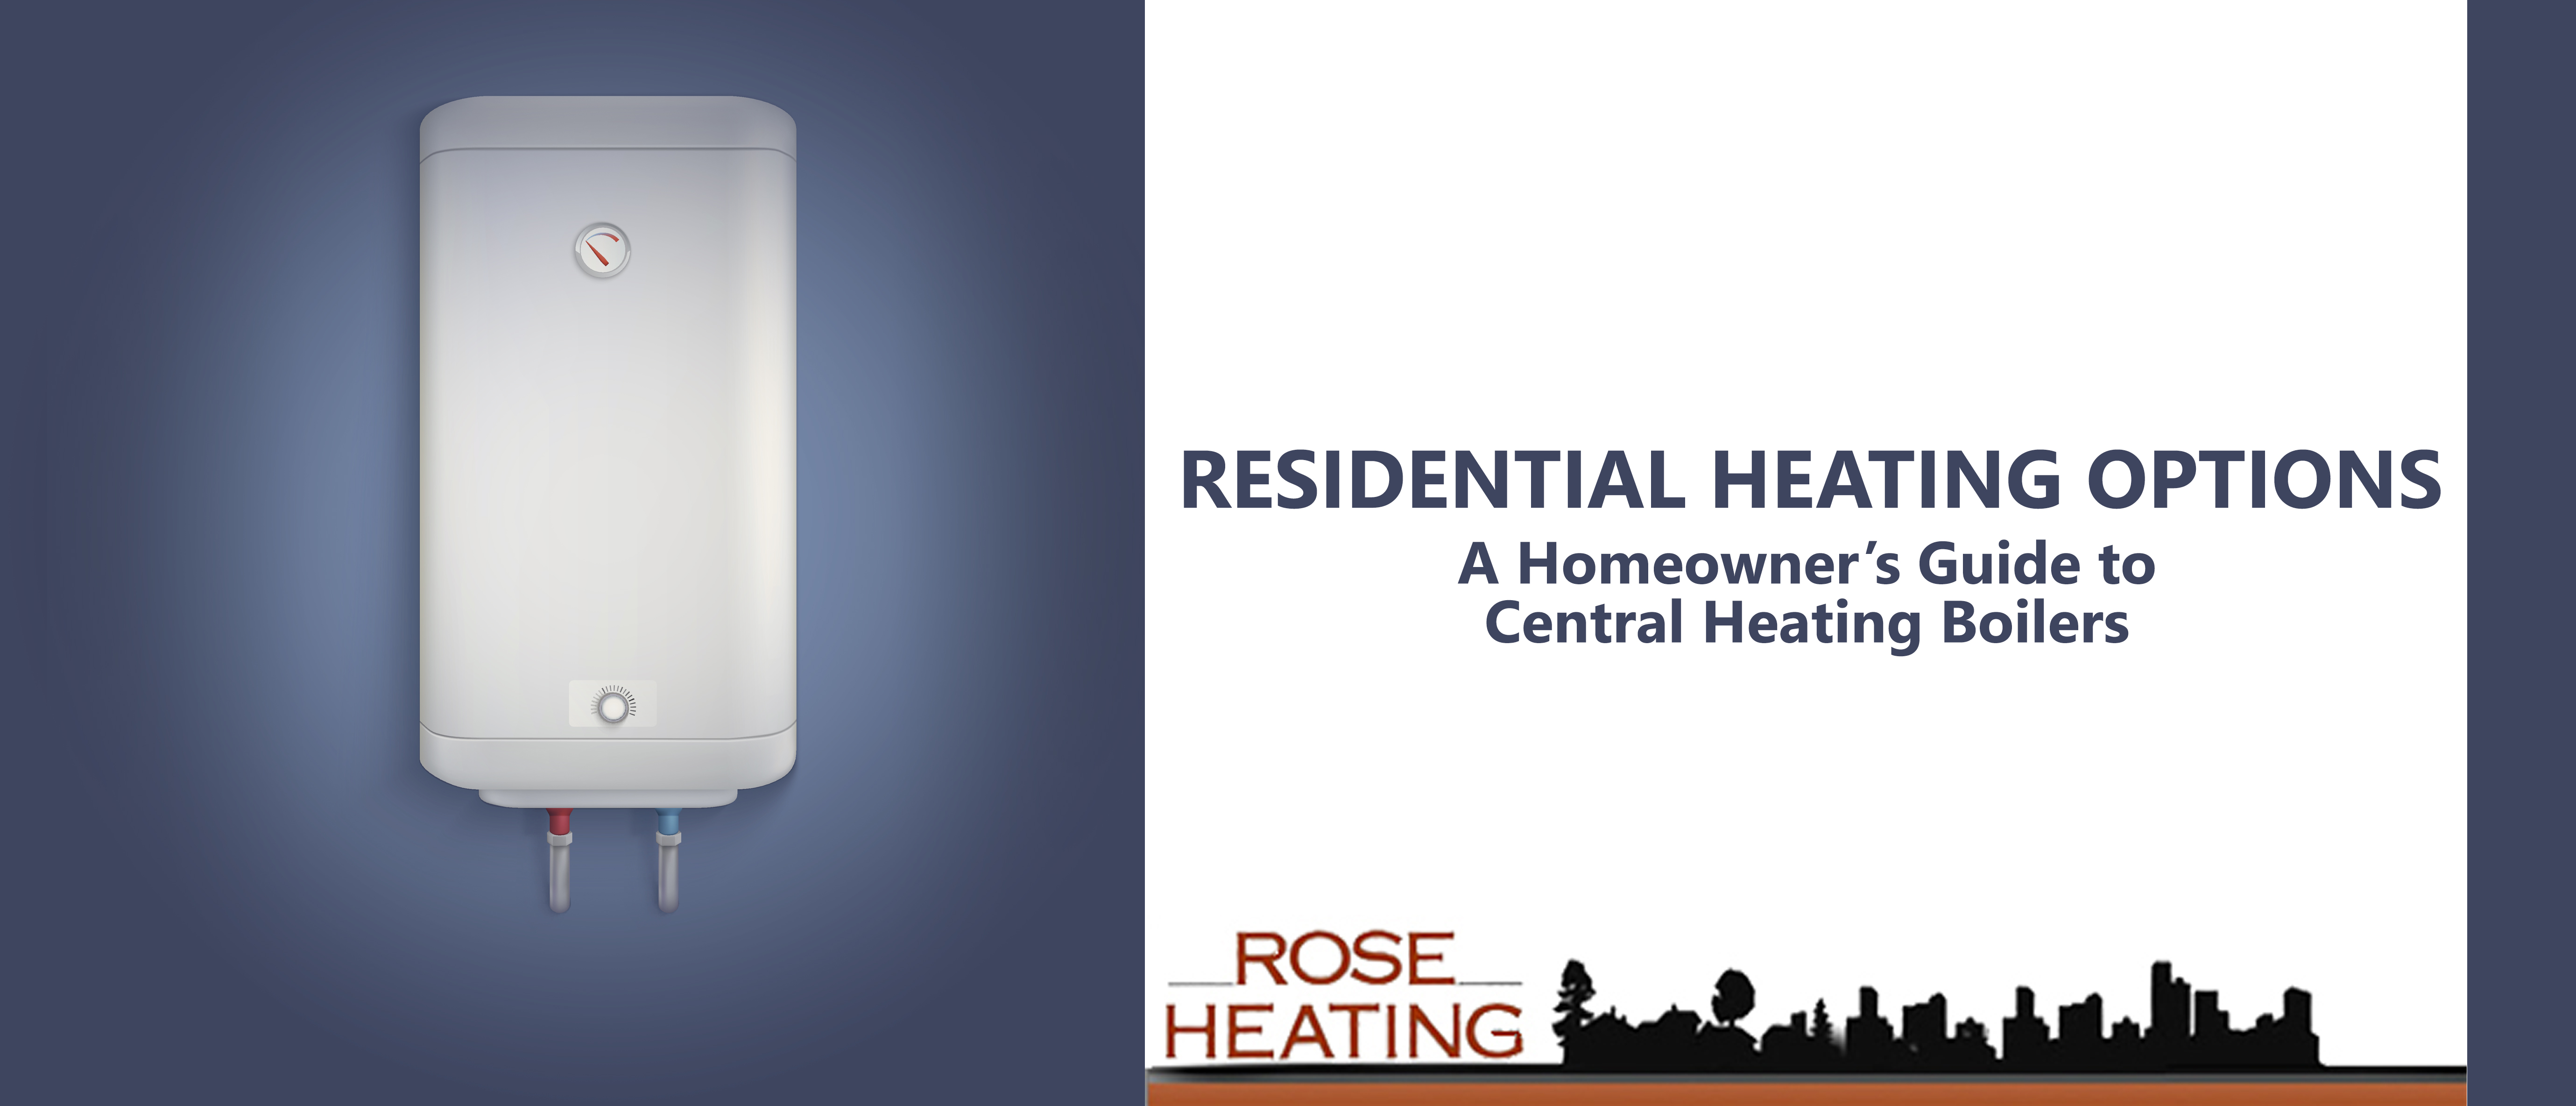 A Quick Guide to Central Heating Boilers